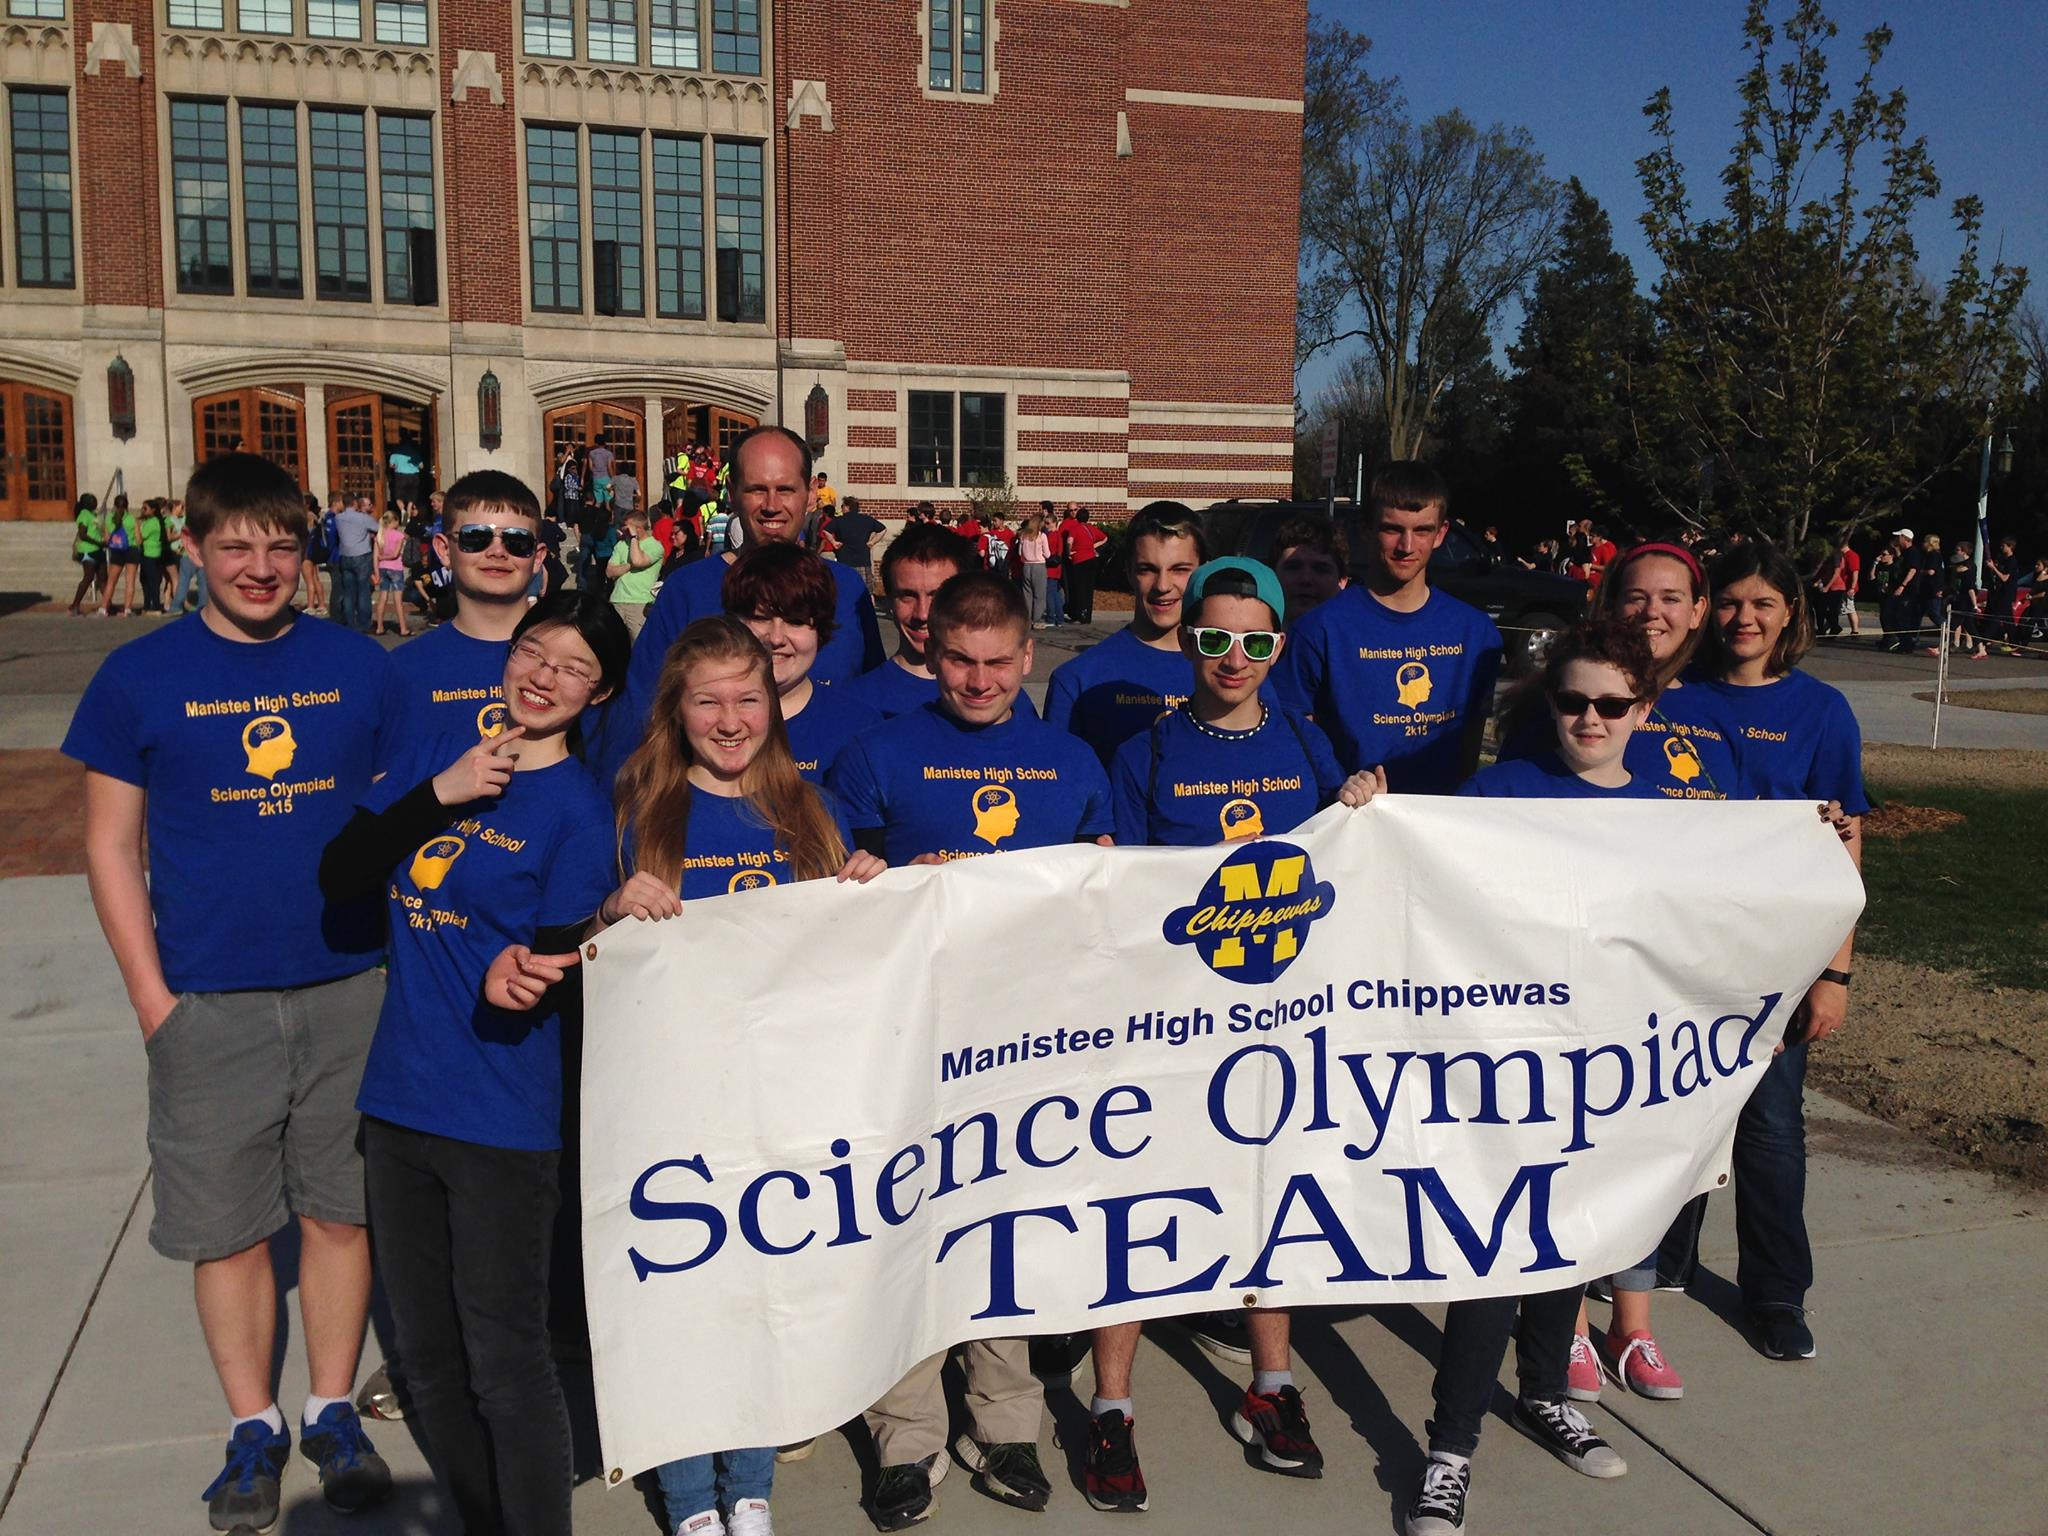 ScienceOlympiadCompetition